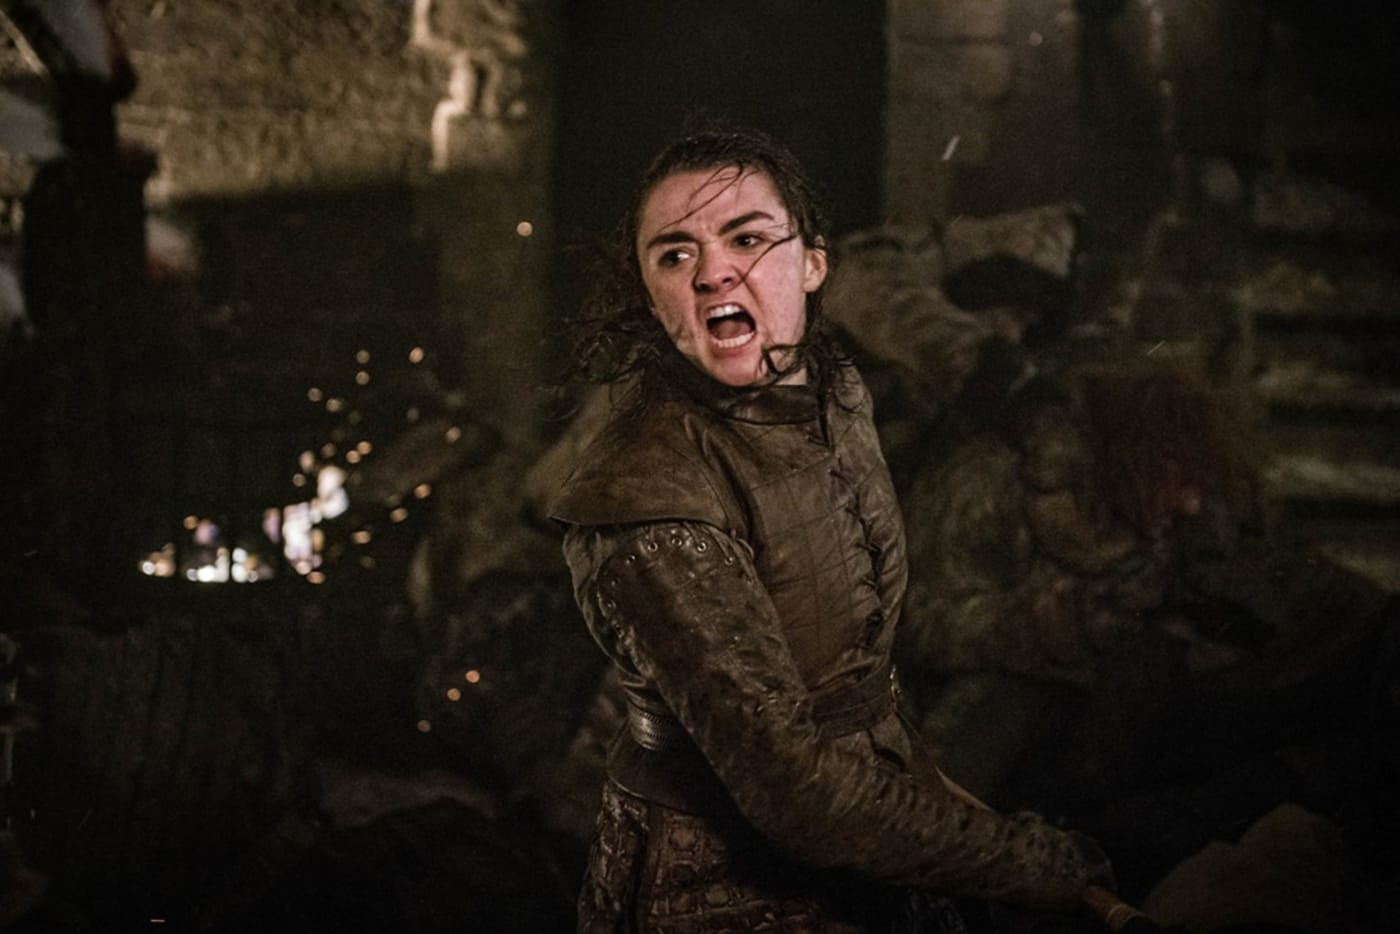 Maisie Williams in production still from HBO's Game Of Thrones